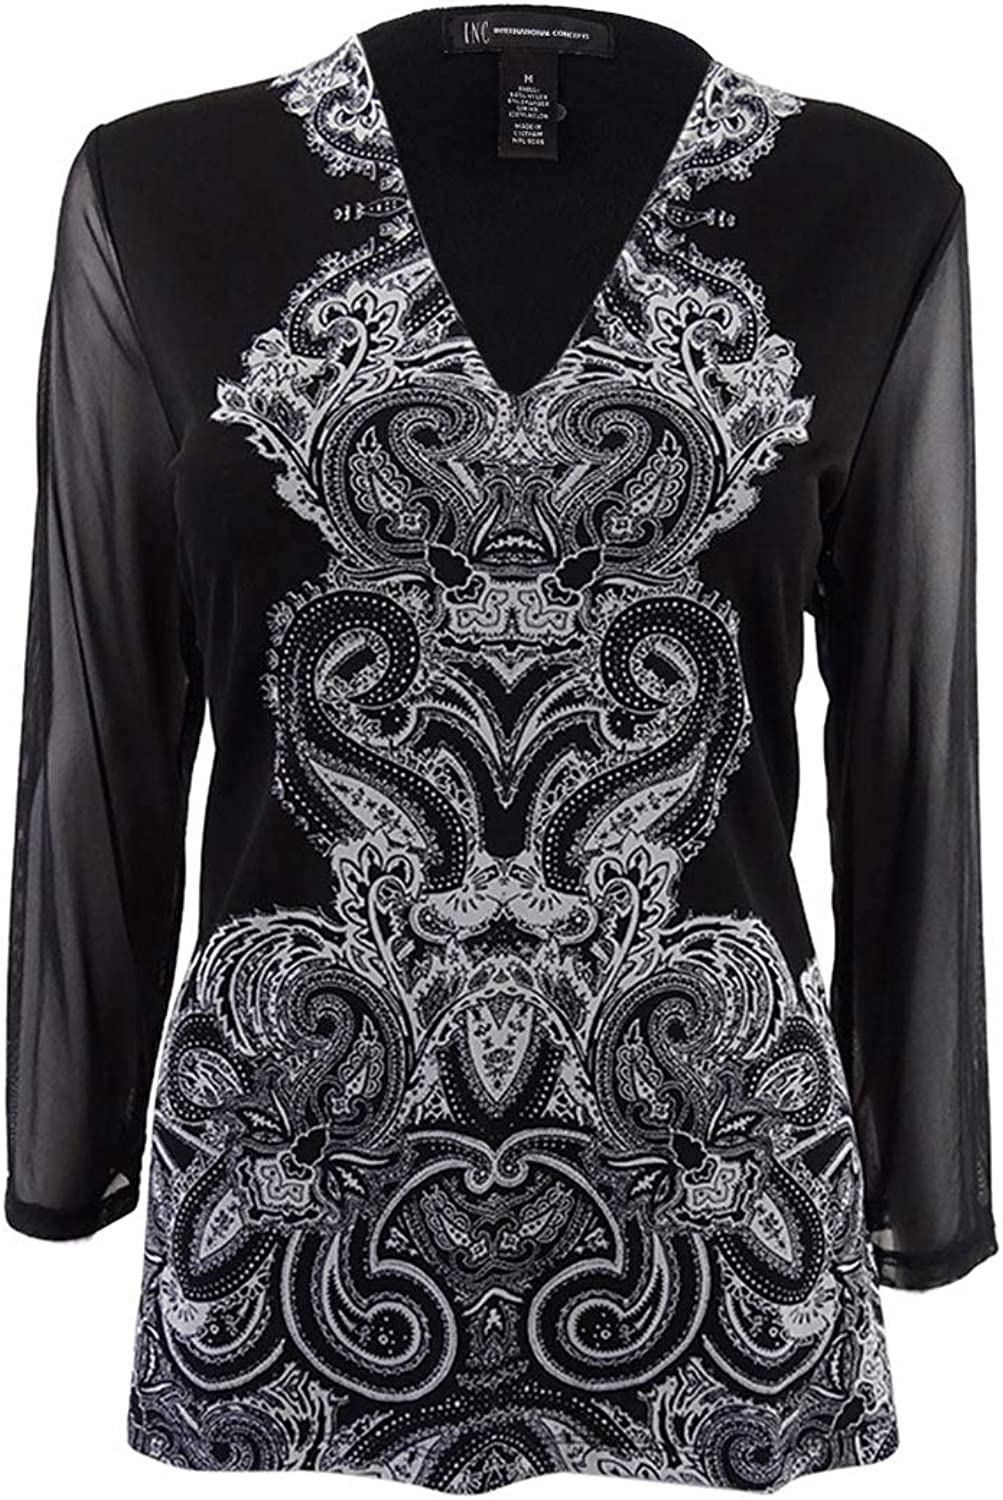 INC International Concepts Women& 39;s Printed Illusion Top